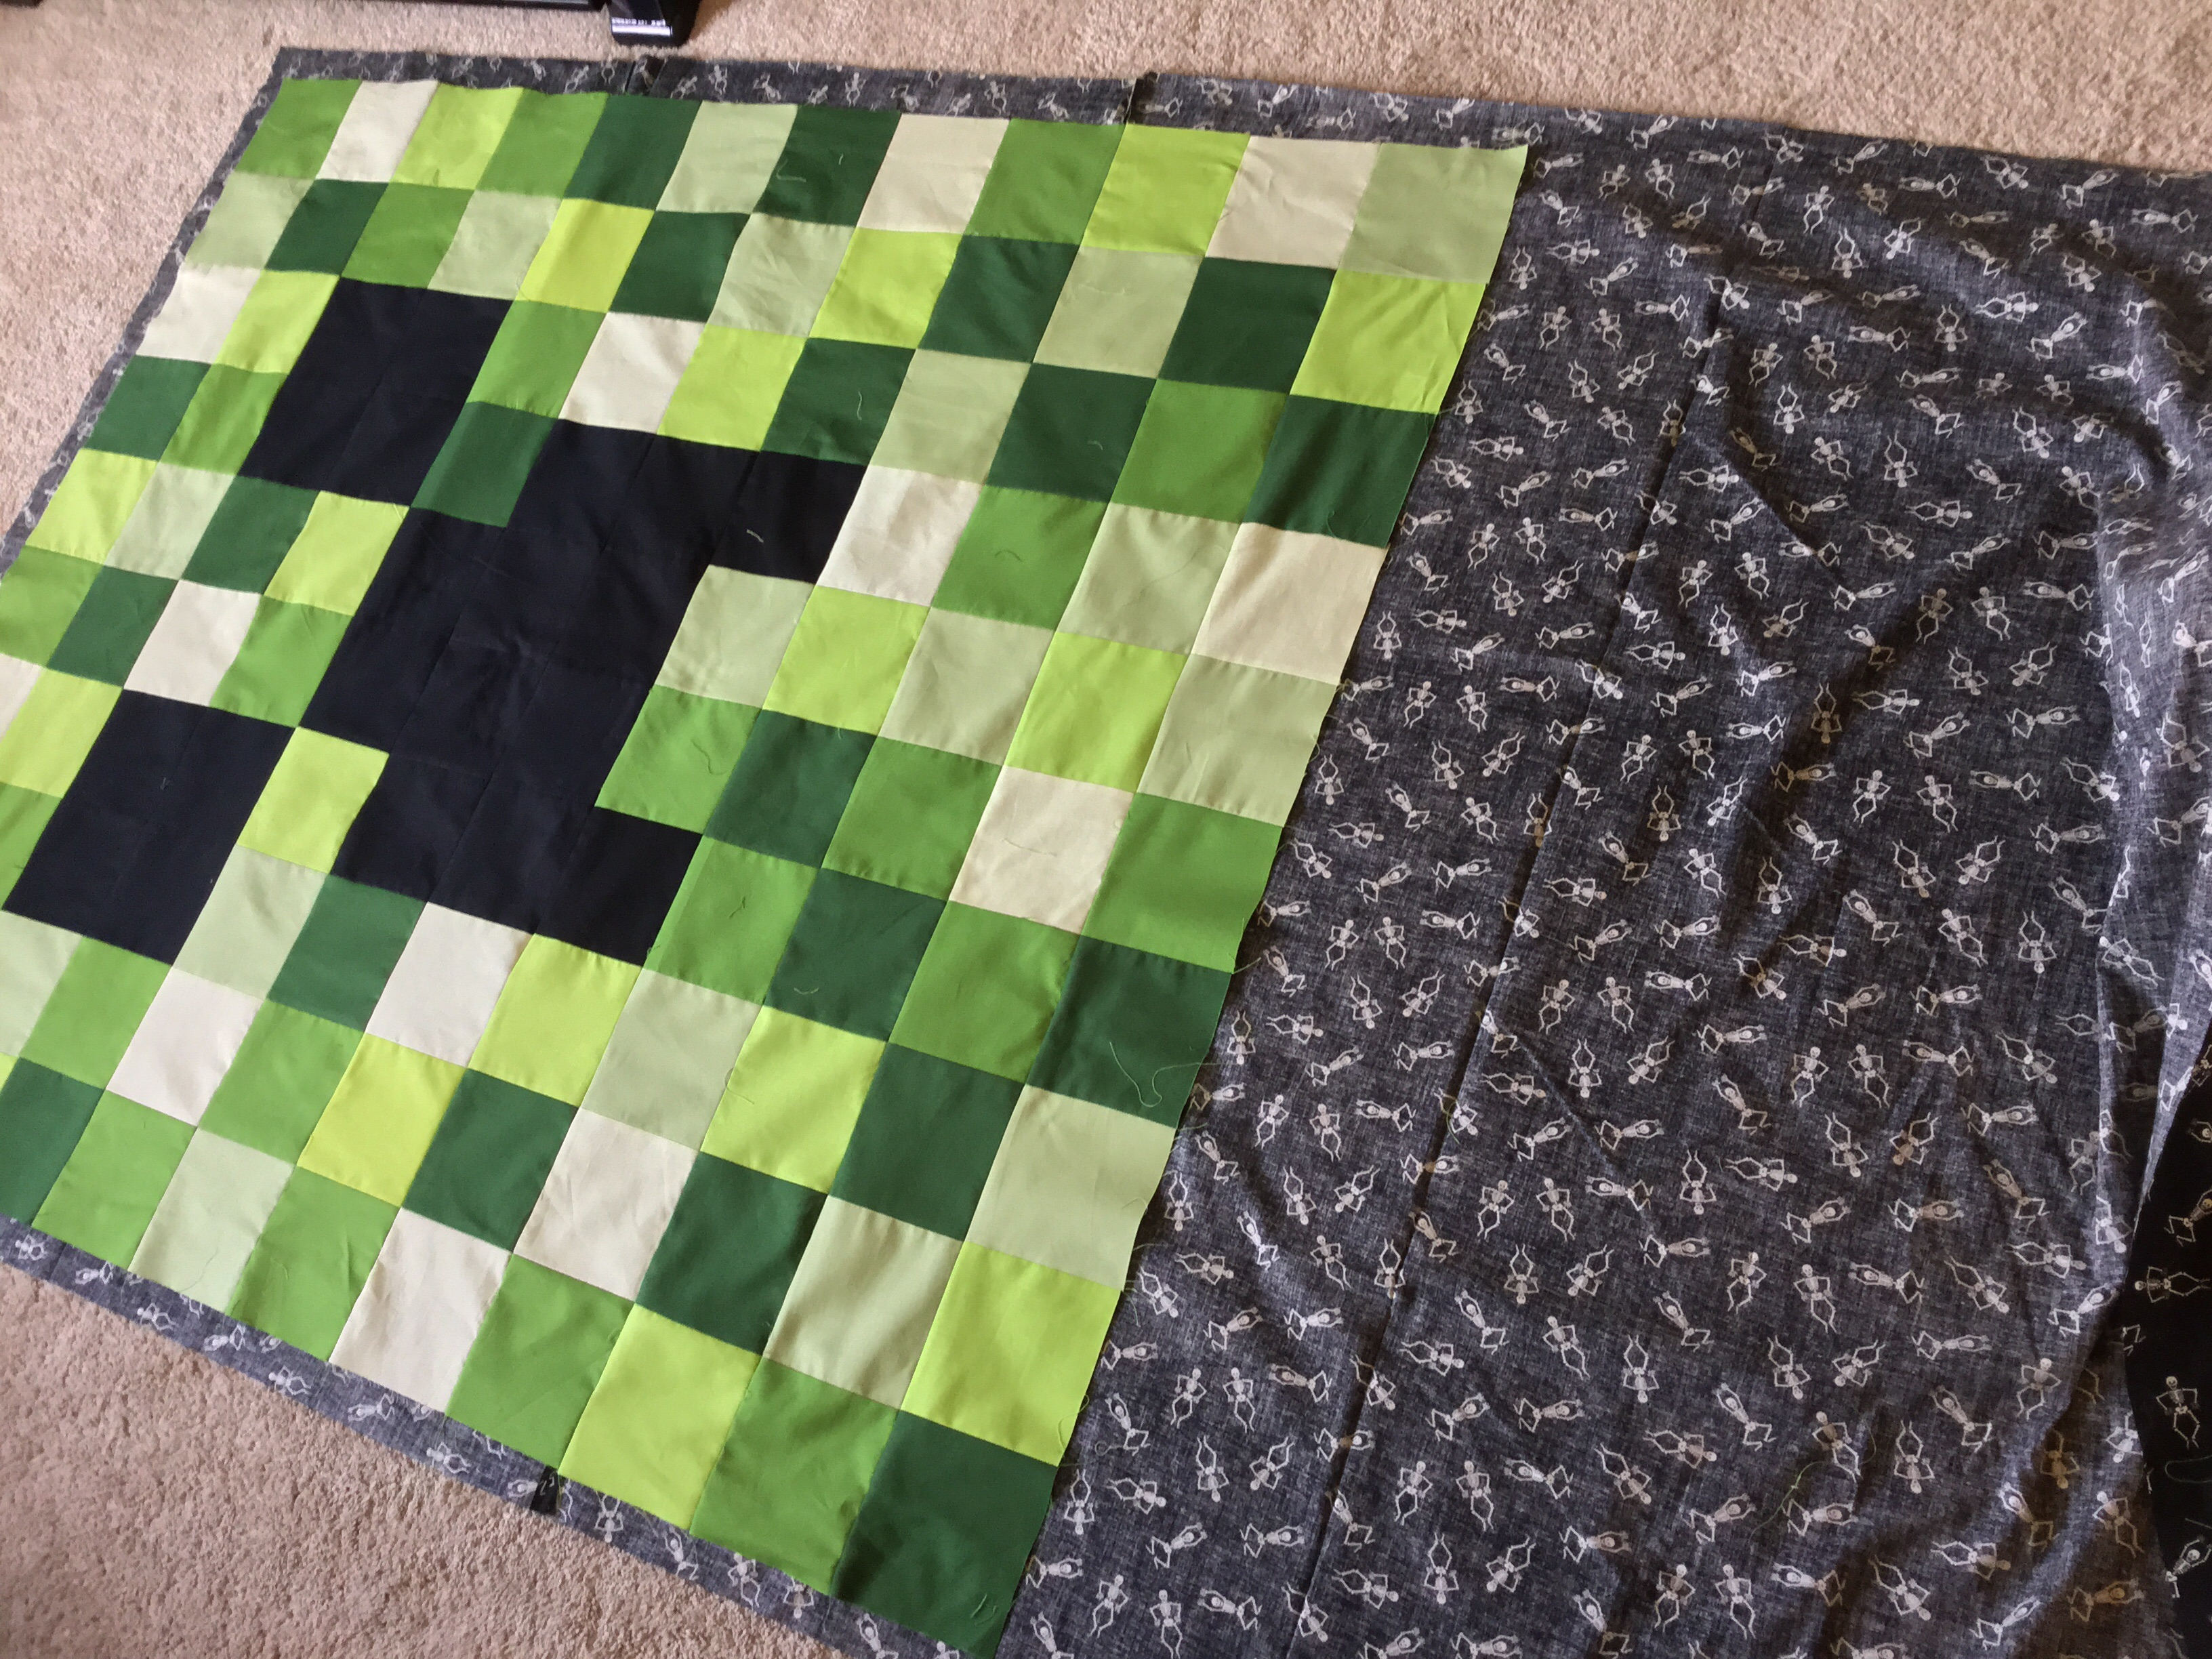 quilt pieced neatly to like are but point of nothing side quilts svg blog on that com by been way constructing your pattern series quiltwoman tops lately blocks checkerboard set you feel different ve squares checkerboards black a